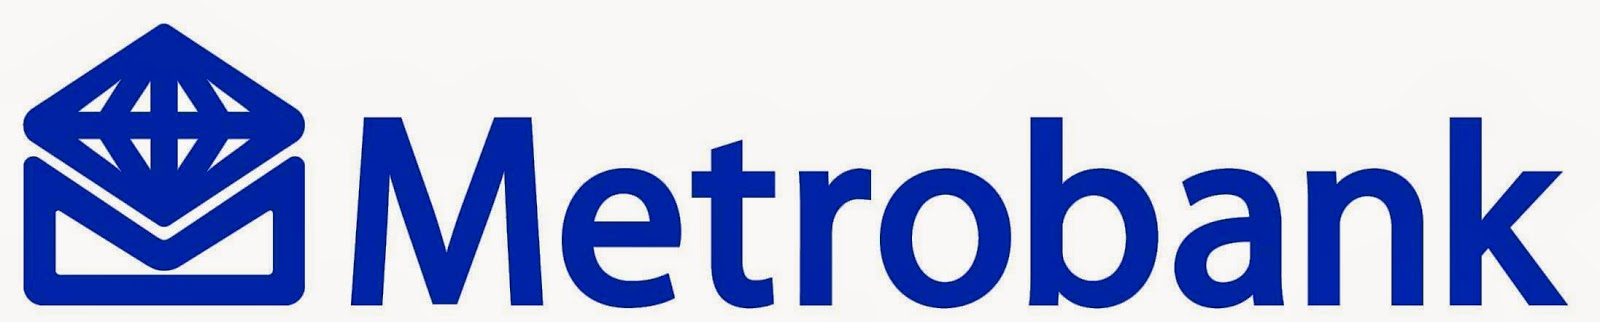 Metrobank Credit Card Explore & Wellness Promos February 28, 2015 to August 31,2015